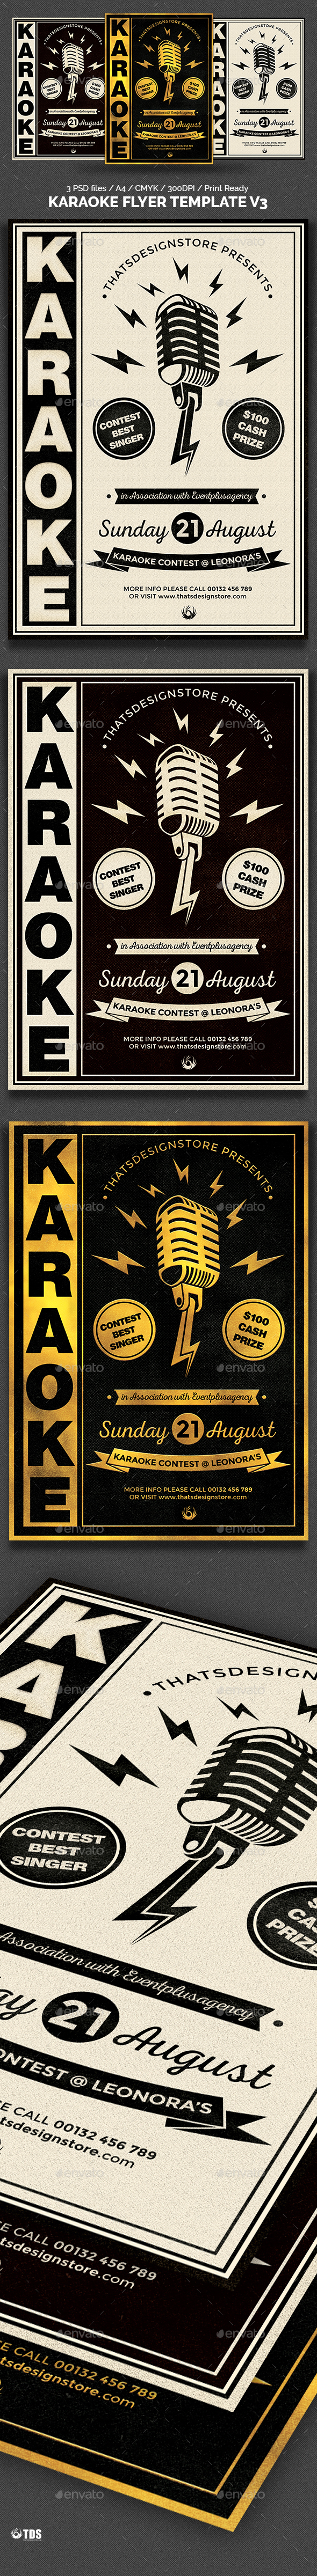 Karaoke Flyer Template V3 - Clubs & Parties Events